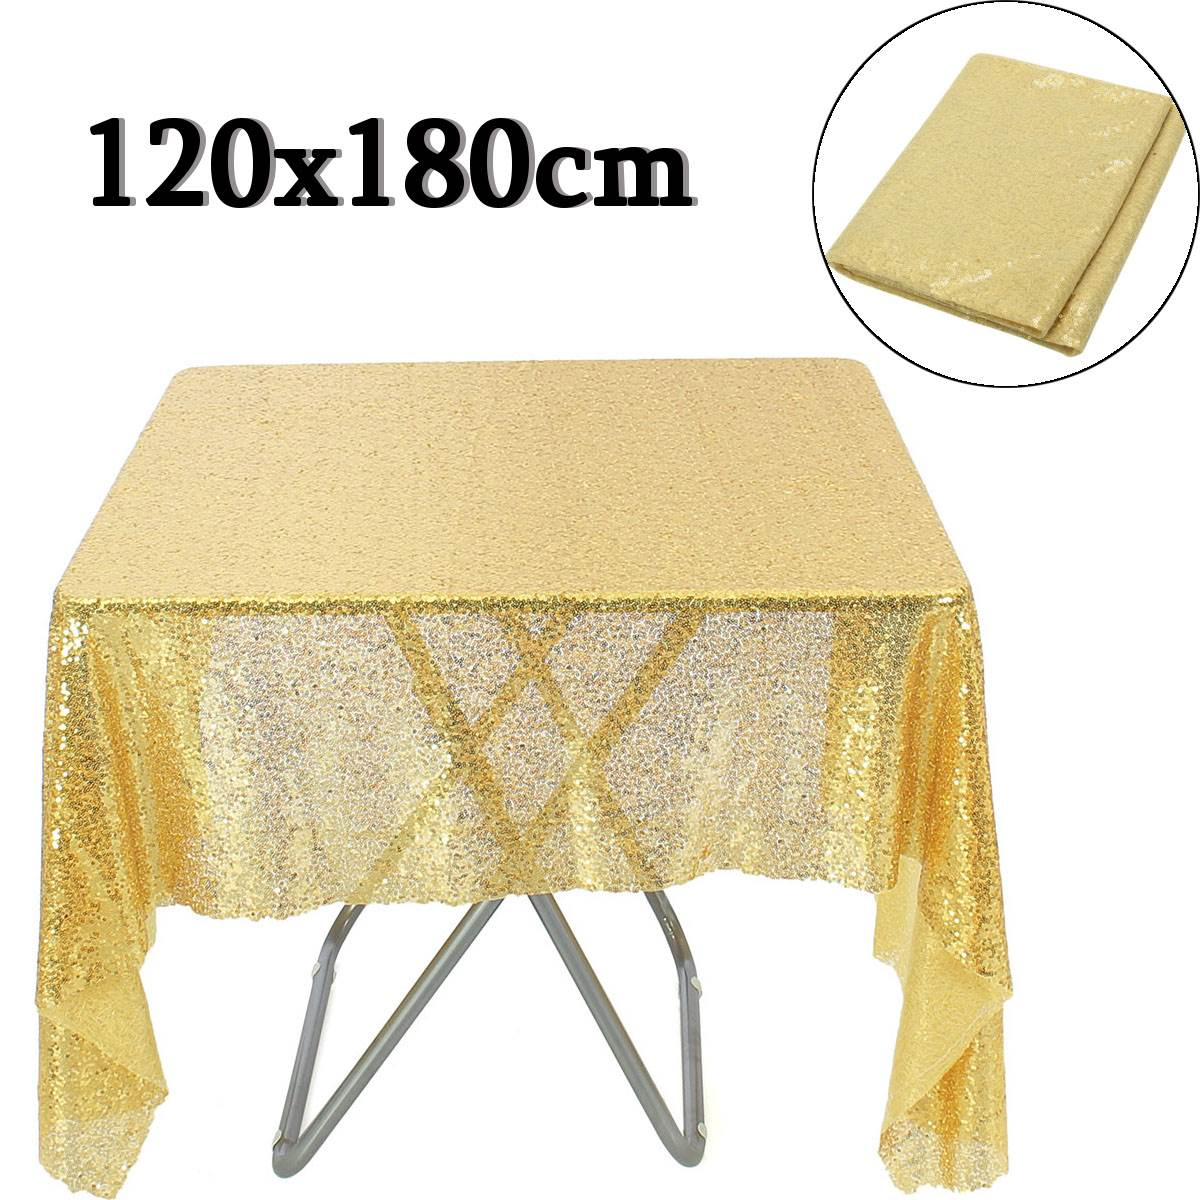 96 inch round tablecloth - 120x180cm Wedding Cake Table Cloth Gold Sequin Table Overlay Toalha Round Tablecloth Decoration Sequin Bling